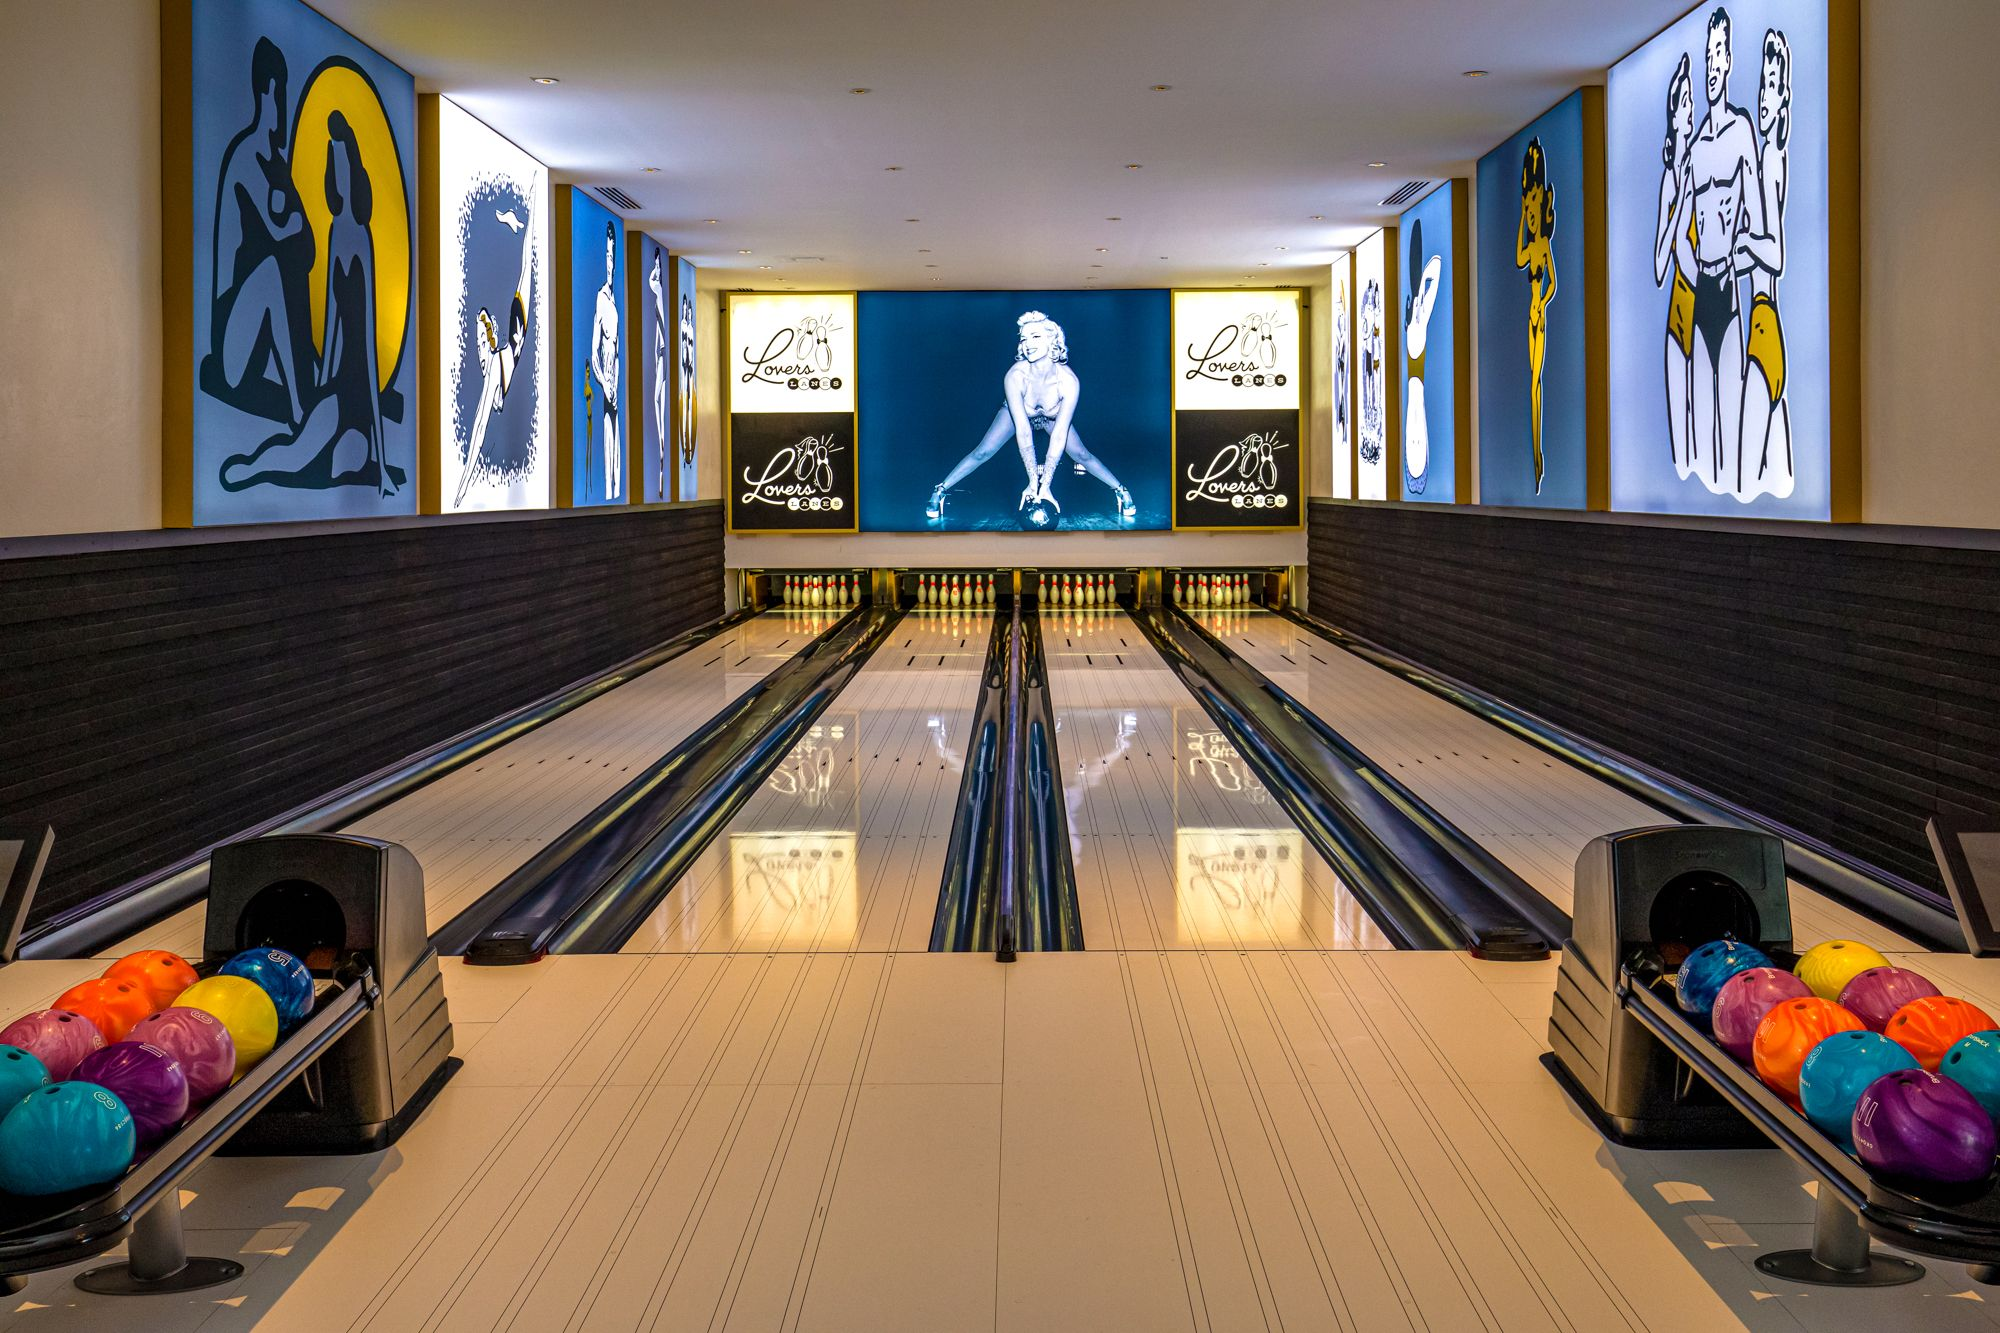 Sandals Royal Barbados Lovers Lanes Bowling Alley